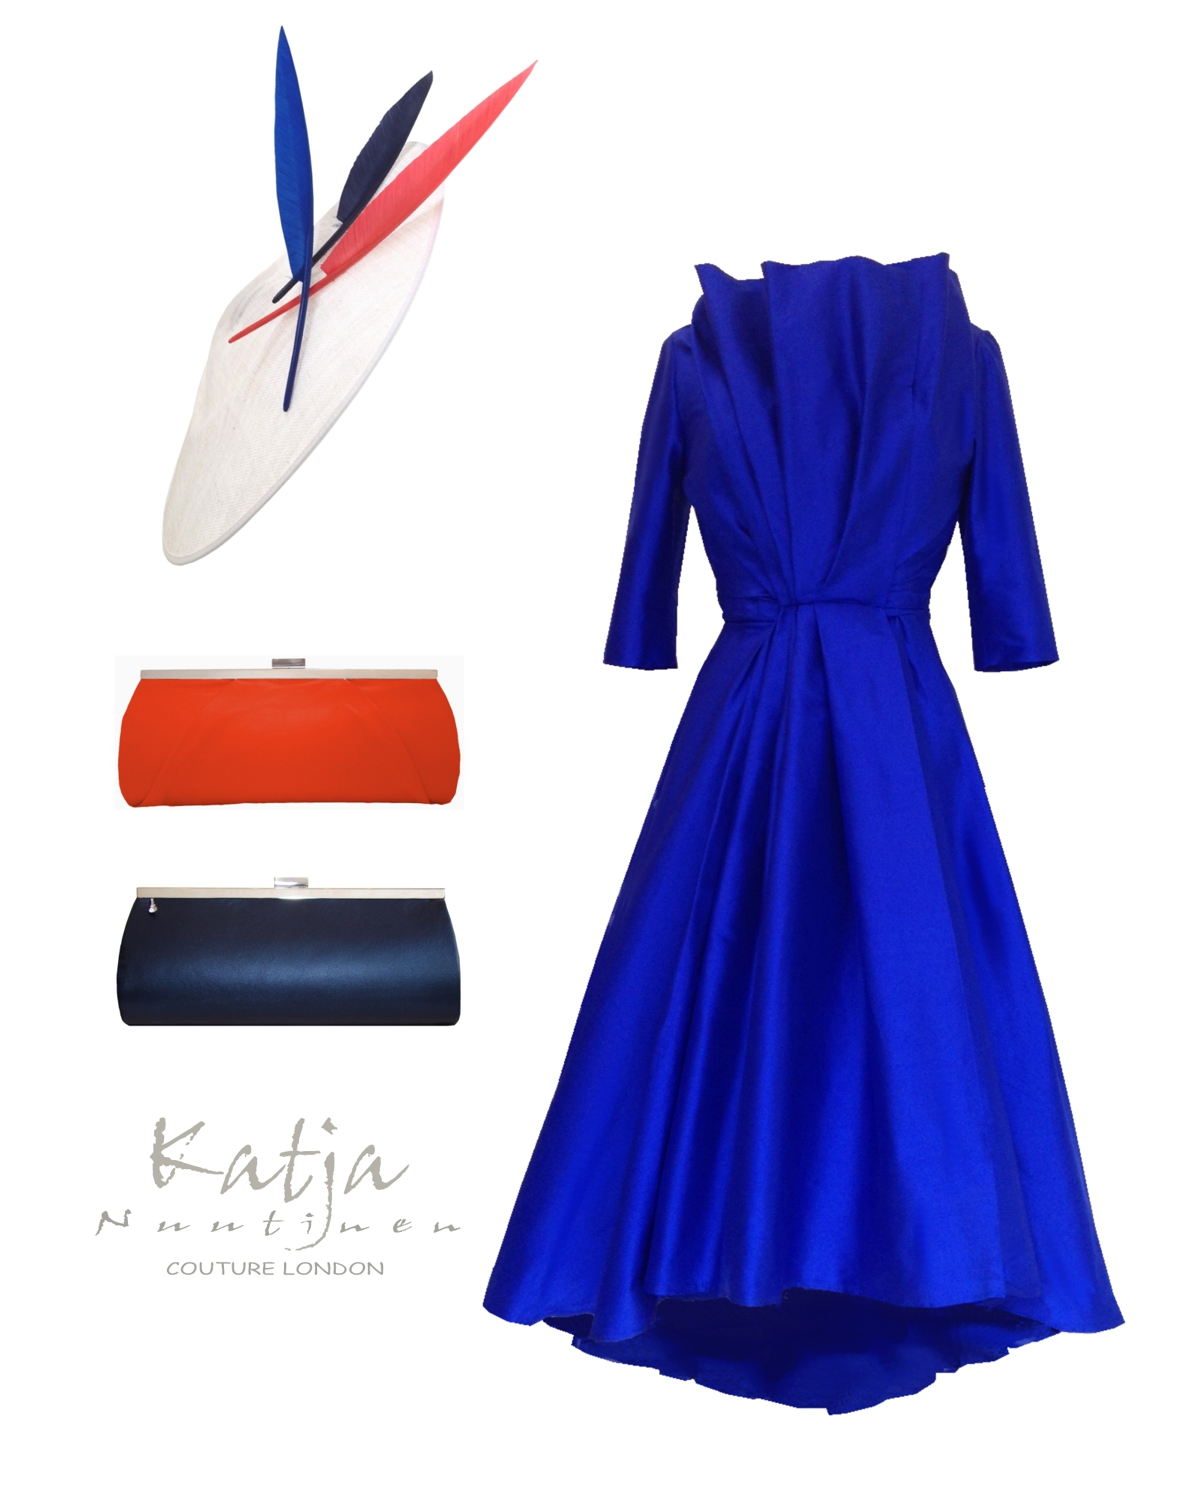 Couture outfit - Royal blue silk tea dress, white disc hat and leather clutch bags